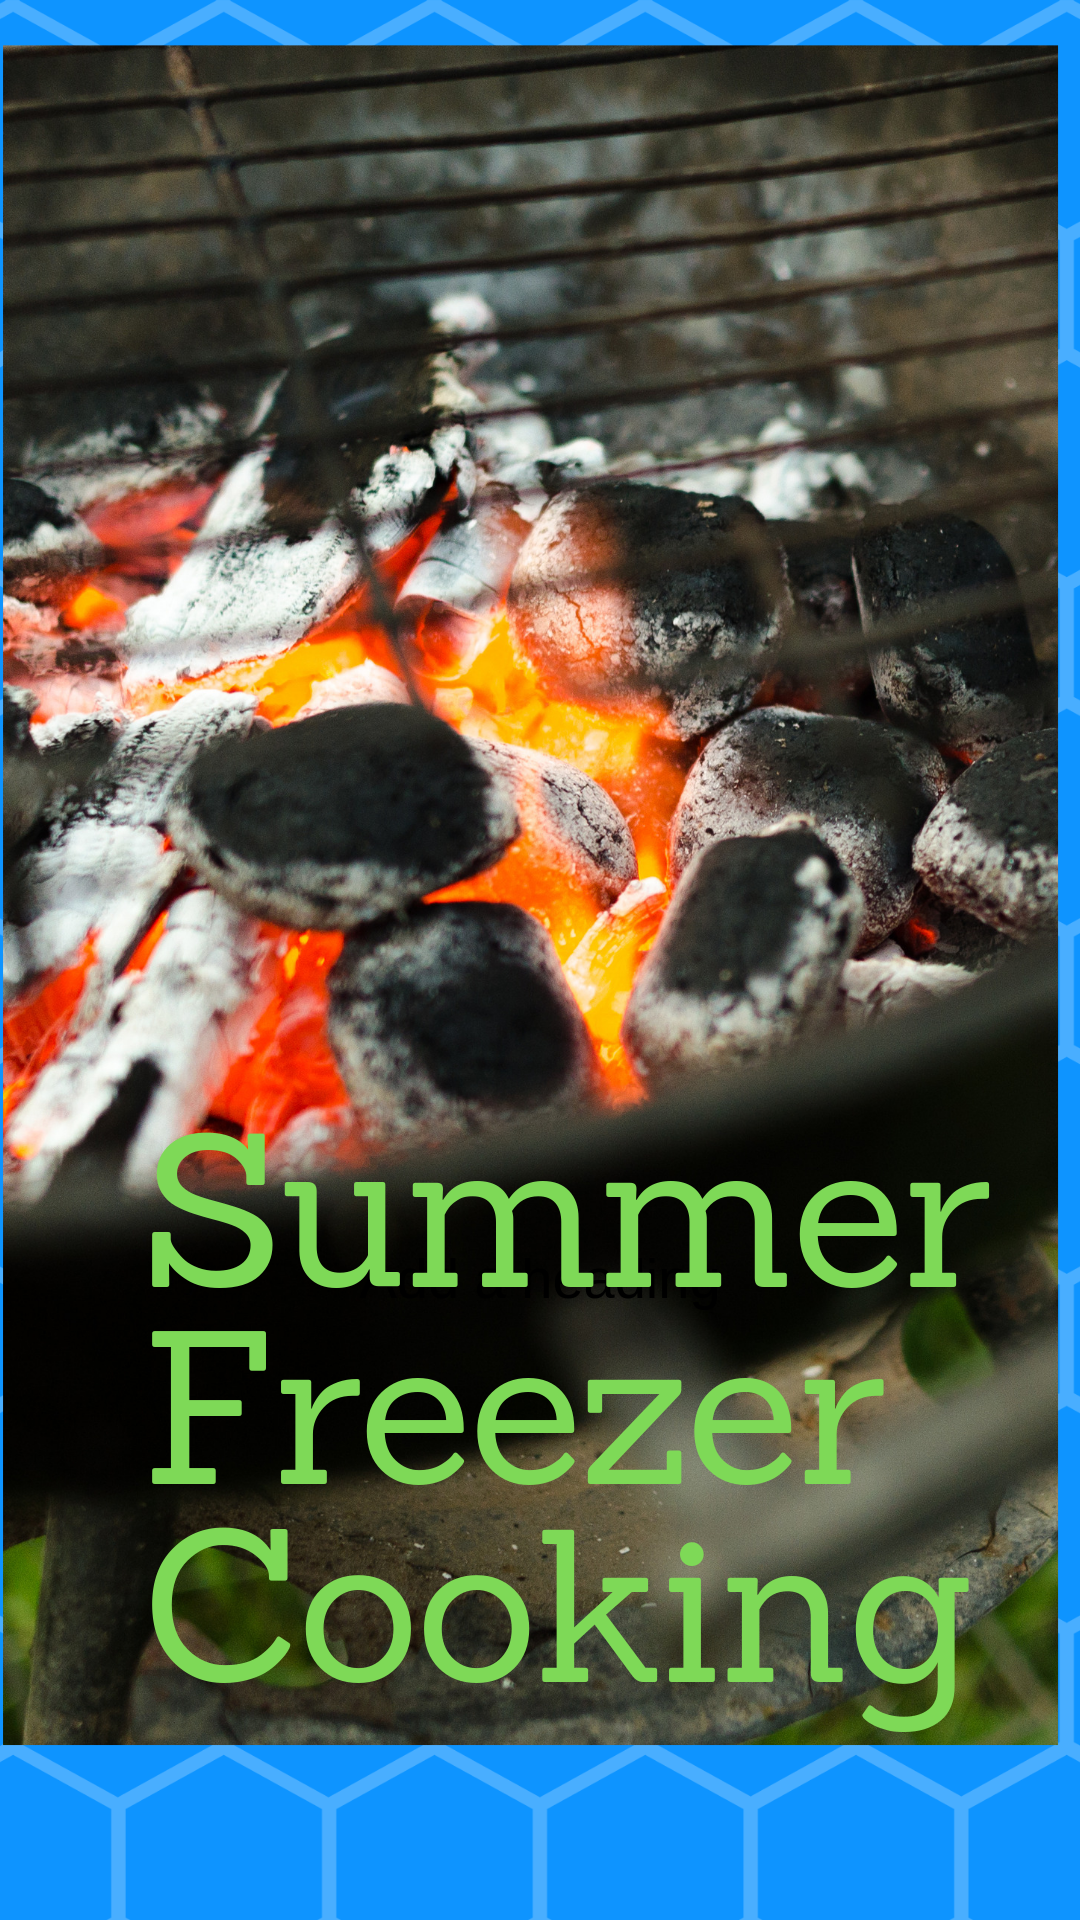 Freezer cooking in the summer - Loveandscribbles.com